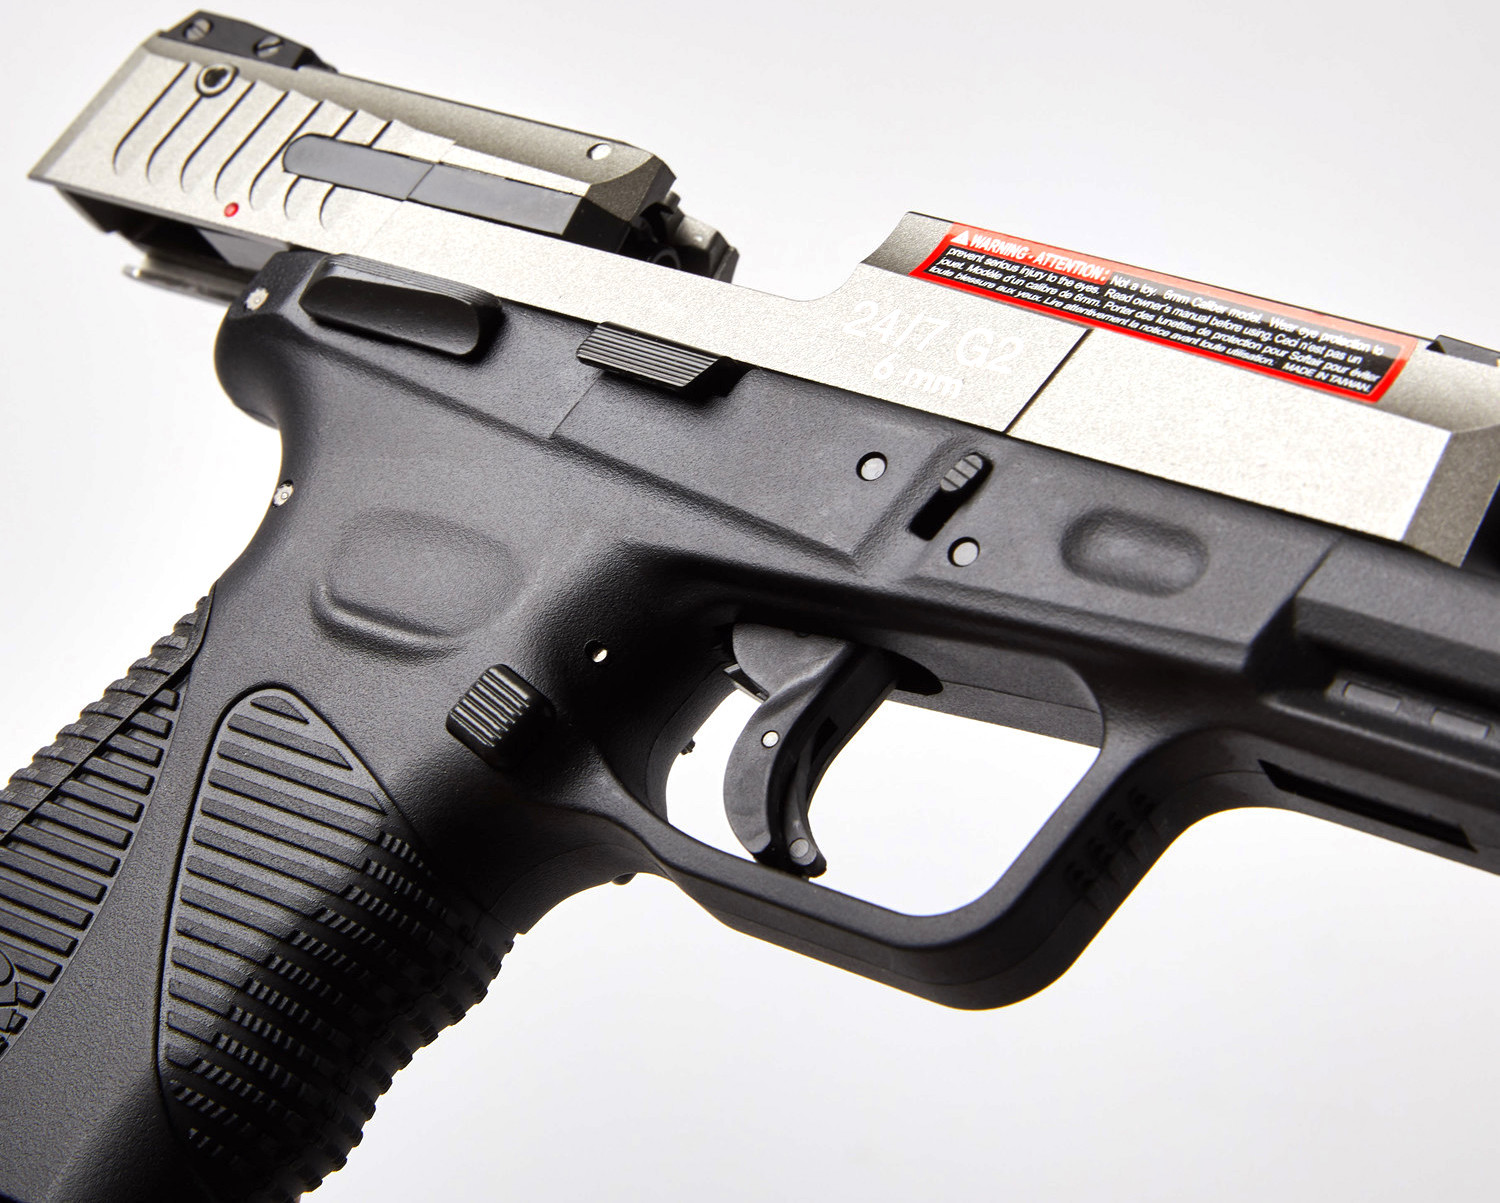 Cybergun Taurus PT24/7 G2 Airsoft Pistol Table Top Review